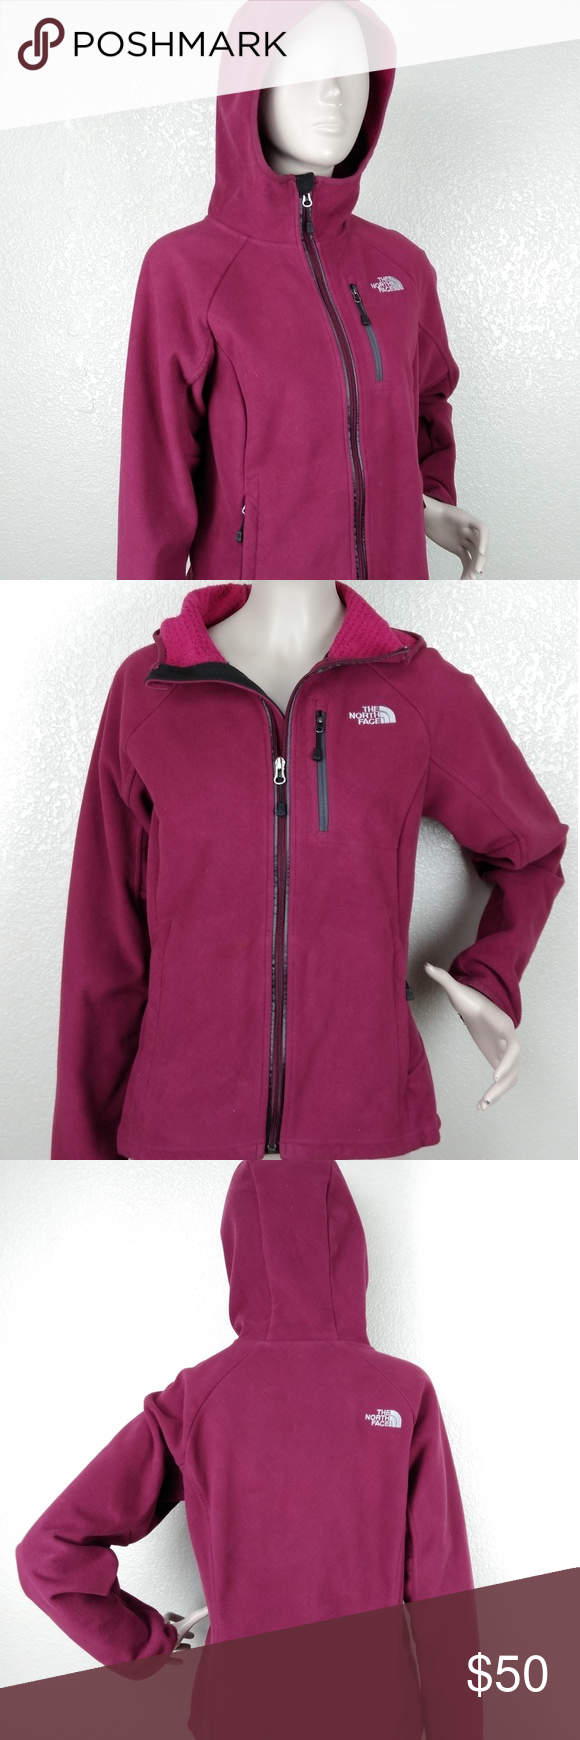 The North Face Windwall Burgundy Hooded Jacket The North Face Windwall Women S Burgundy Full Hoodie Jacket Size North Face Jacket Hooded Jacket Clothes Design [ 1740 x 580 Pixel ]